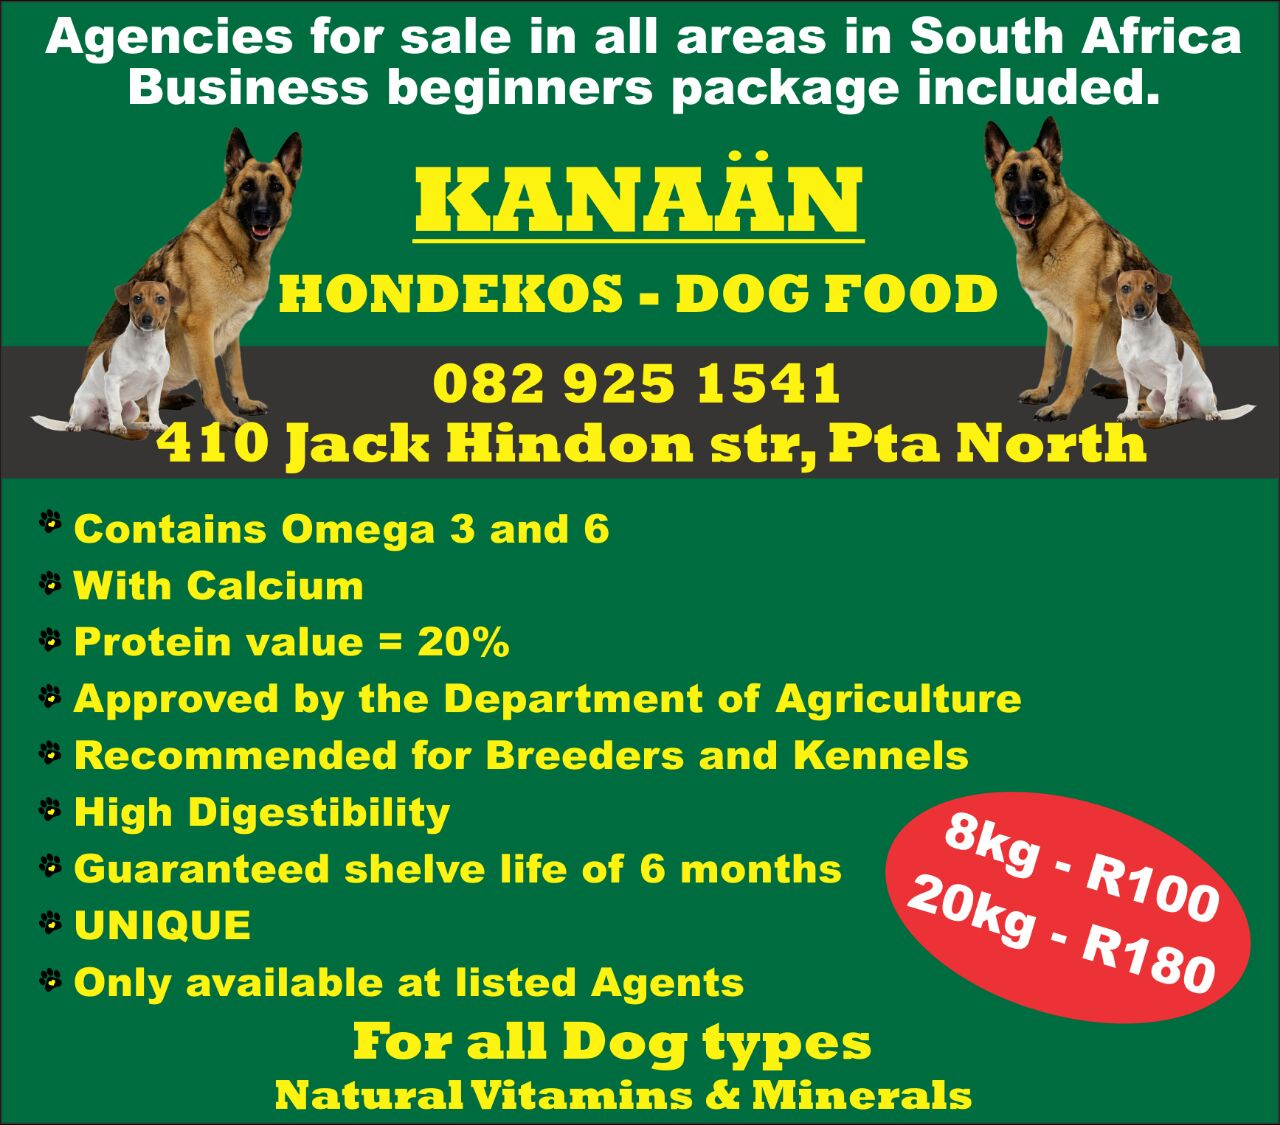 kanaan dog food for sale